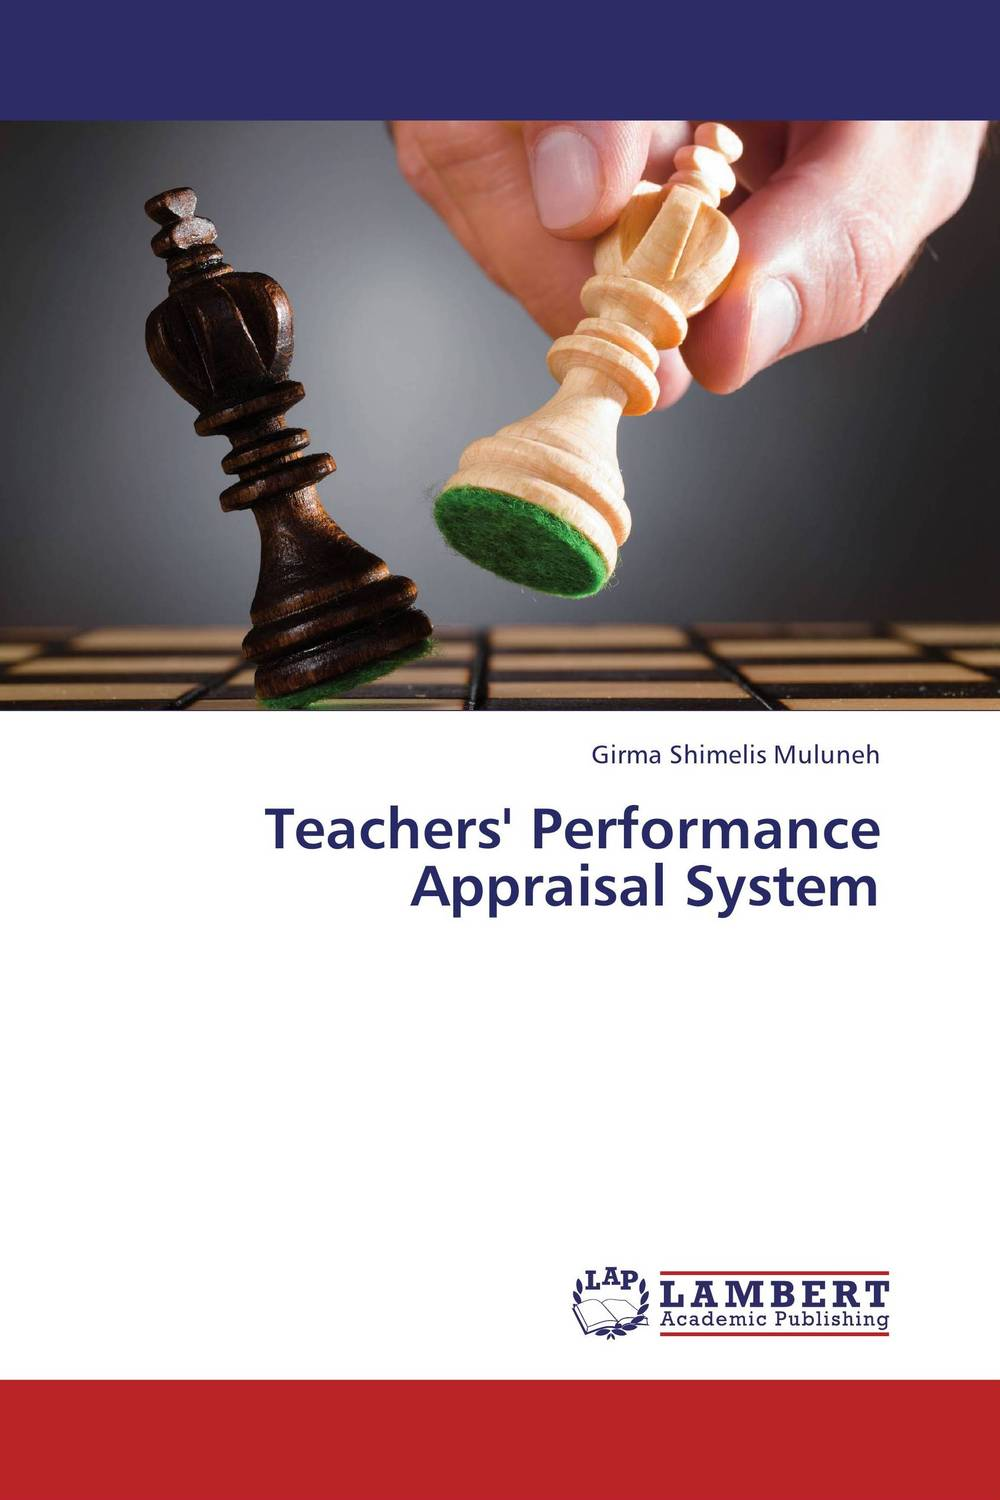 Teachers' Performance Appraisal System